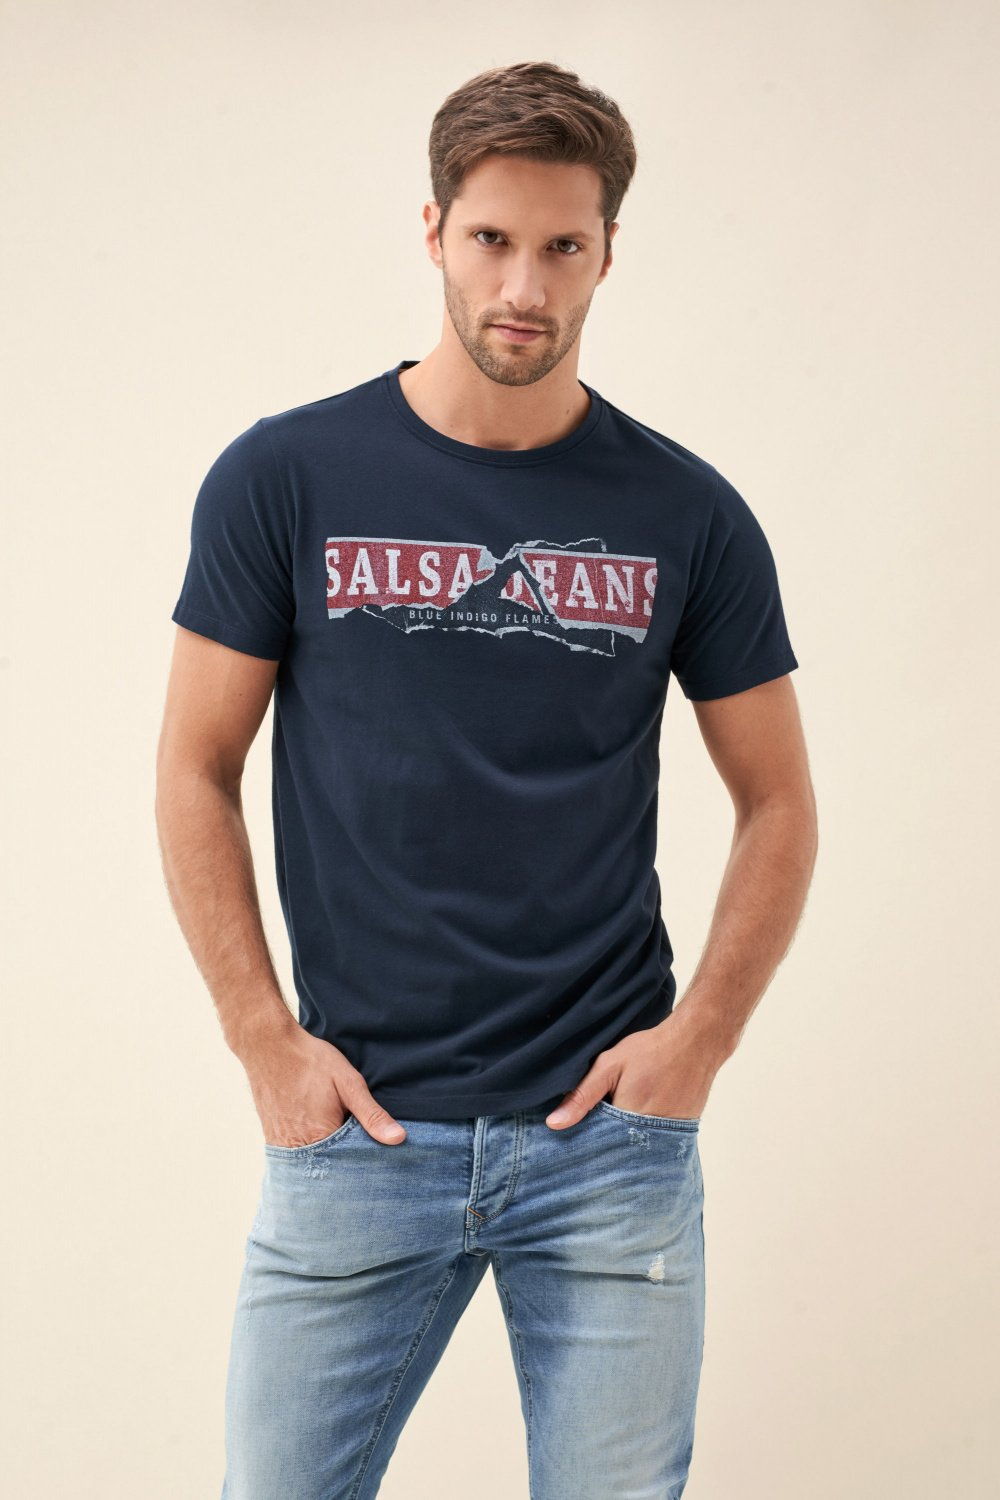 Textured t-shirt with logo print - Salsa